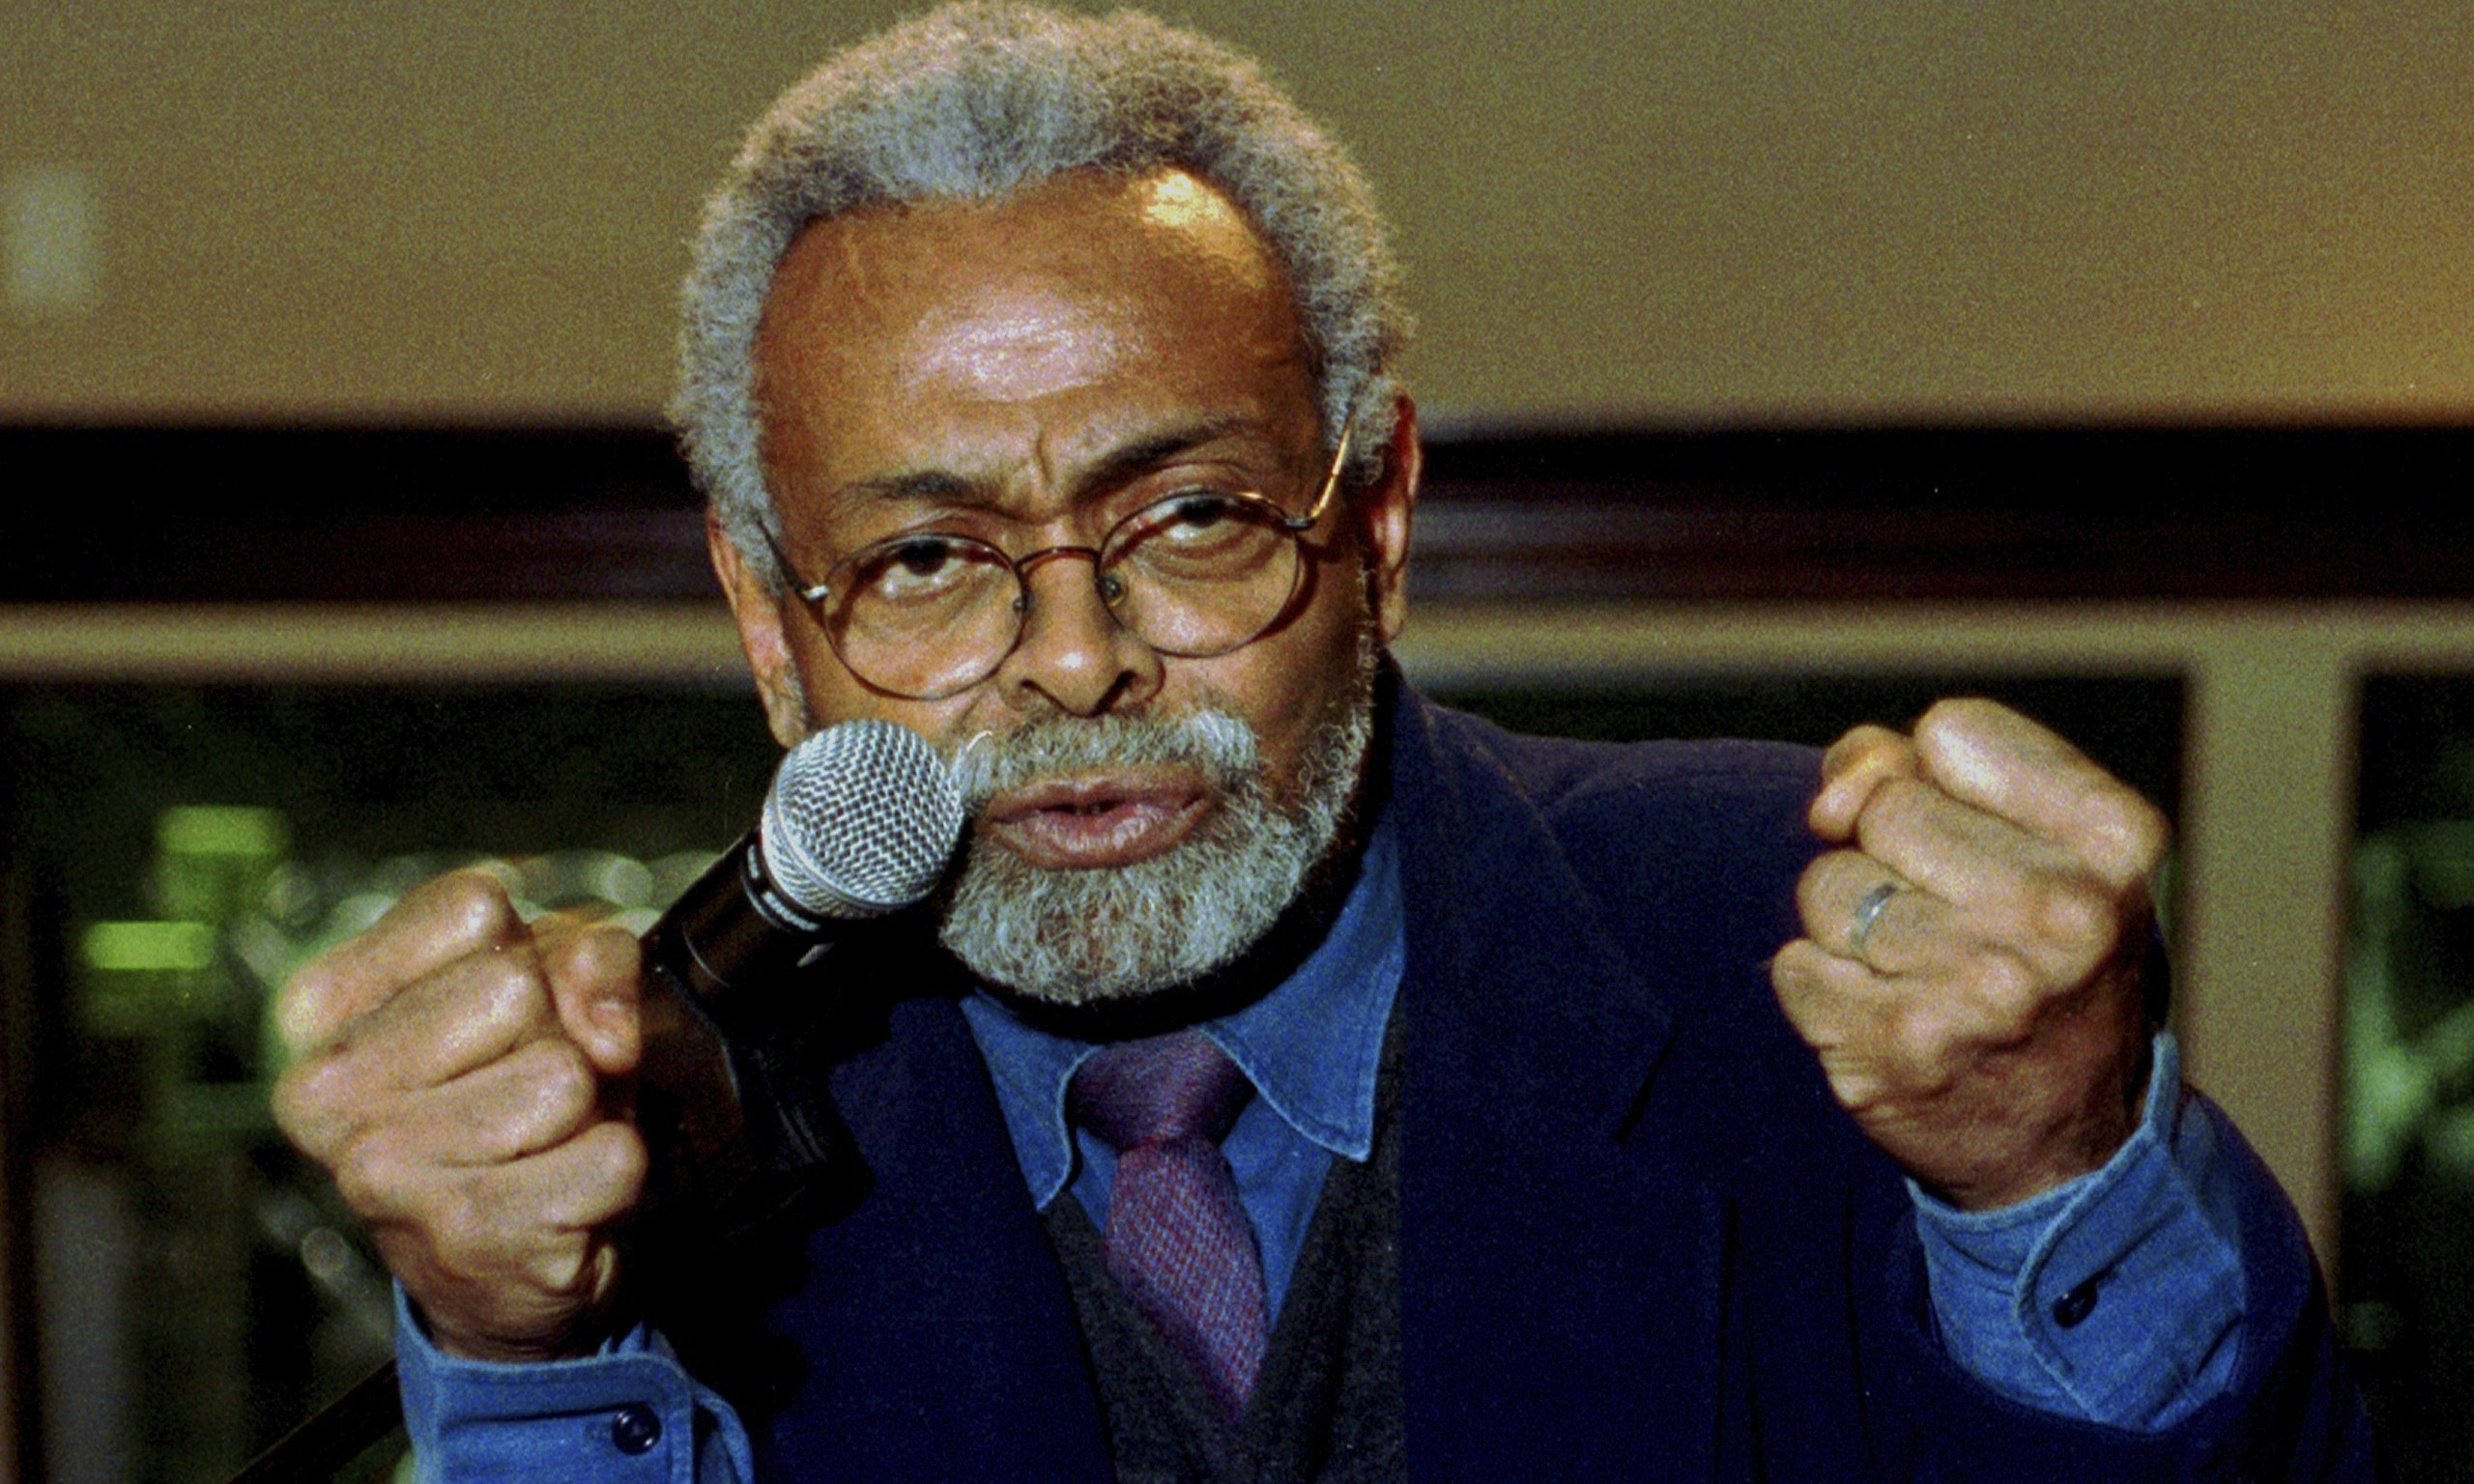 Amiri Baraka Dead: Controversial Author And Activist Dies At 79